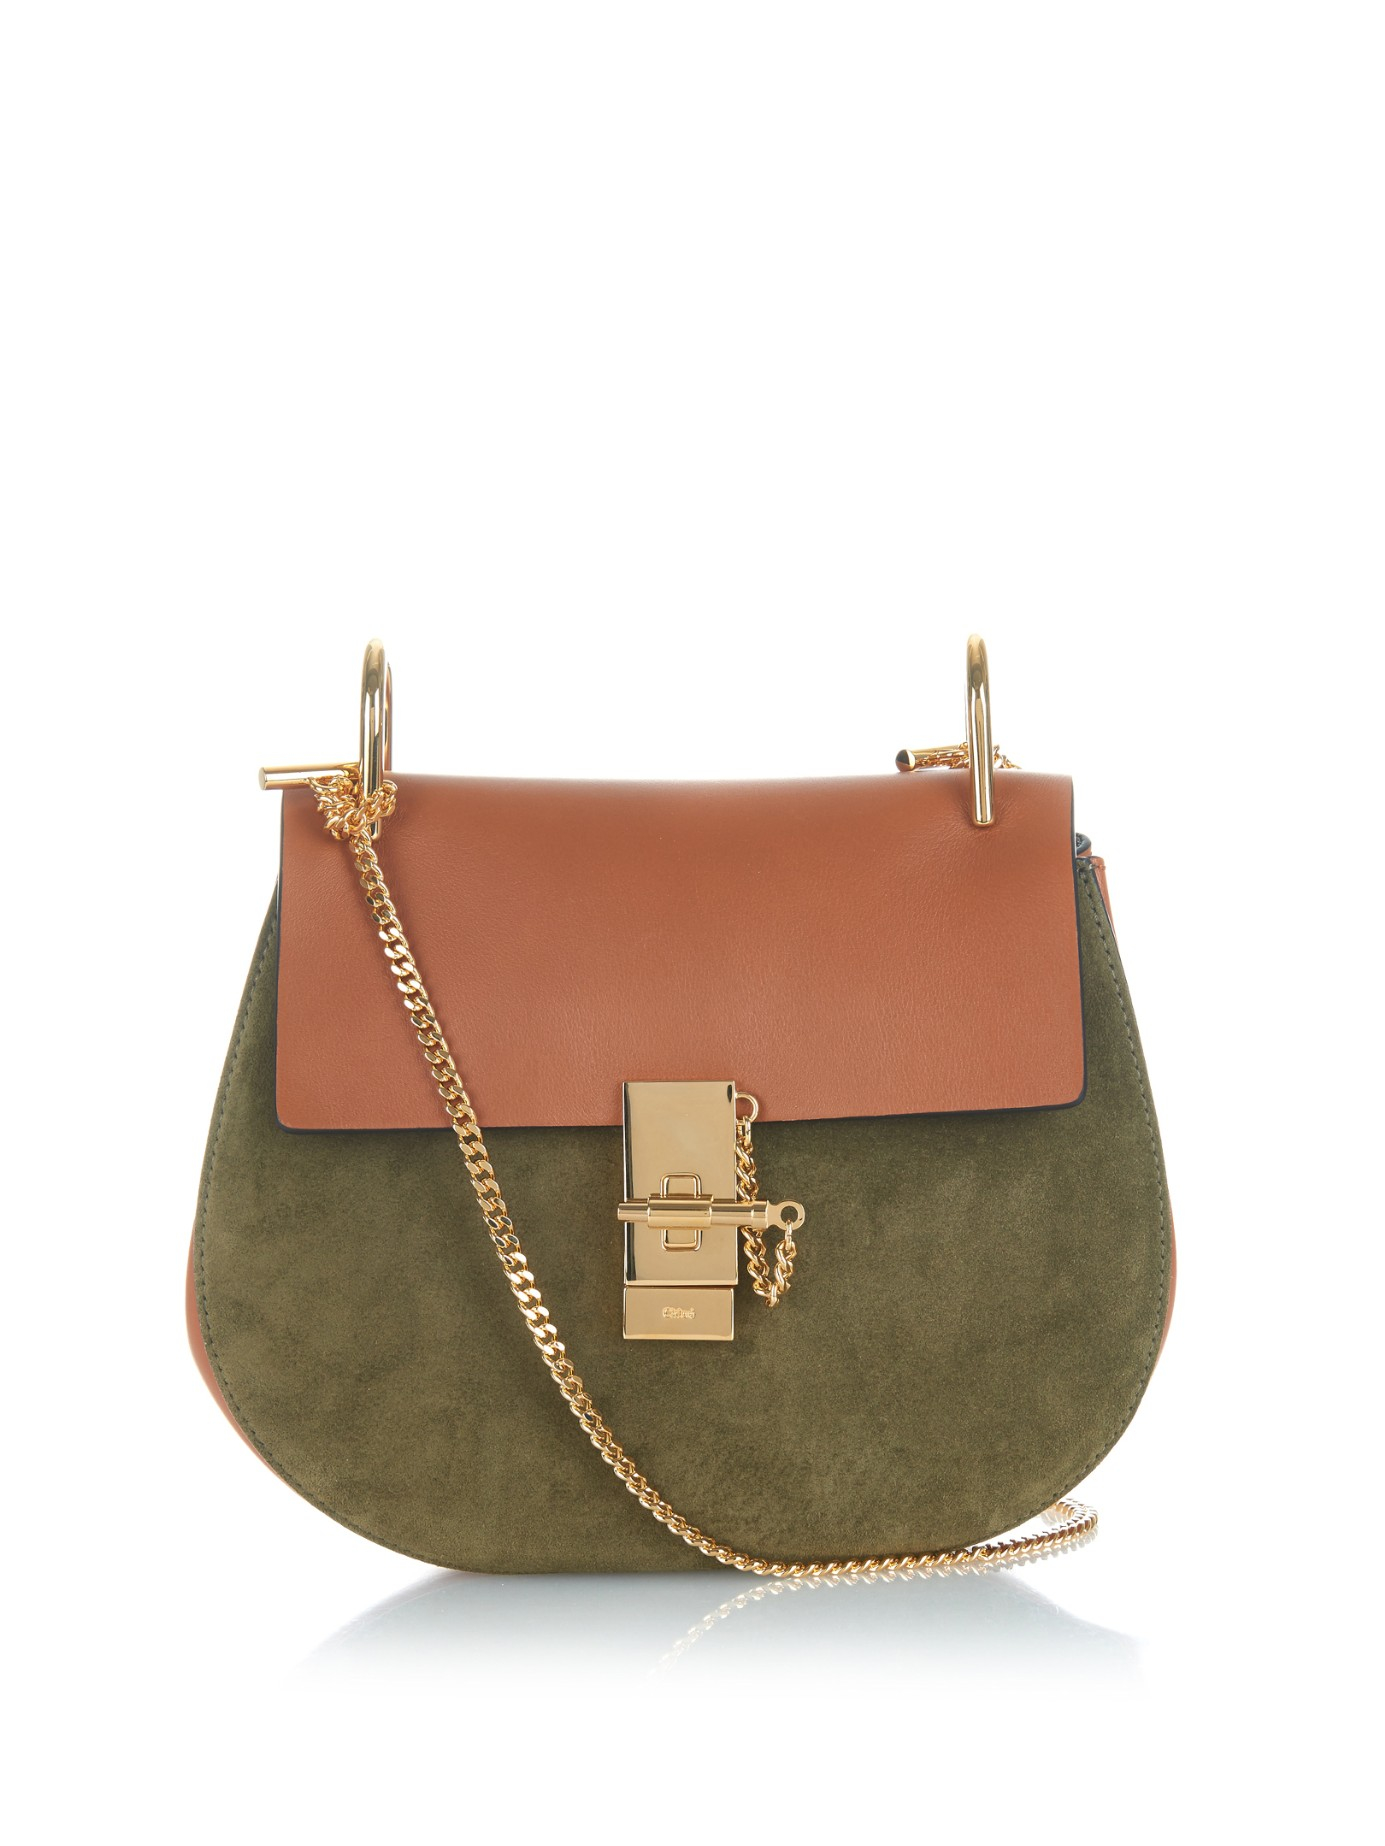 clhoe bag - Chlo�� Drew Small Leather and Suede Shoulder Bag in Natural (KHAKI ...